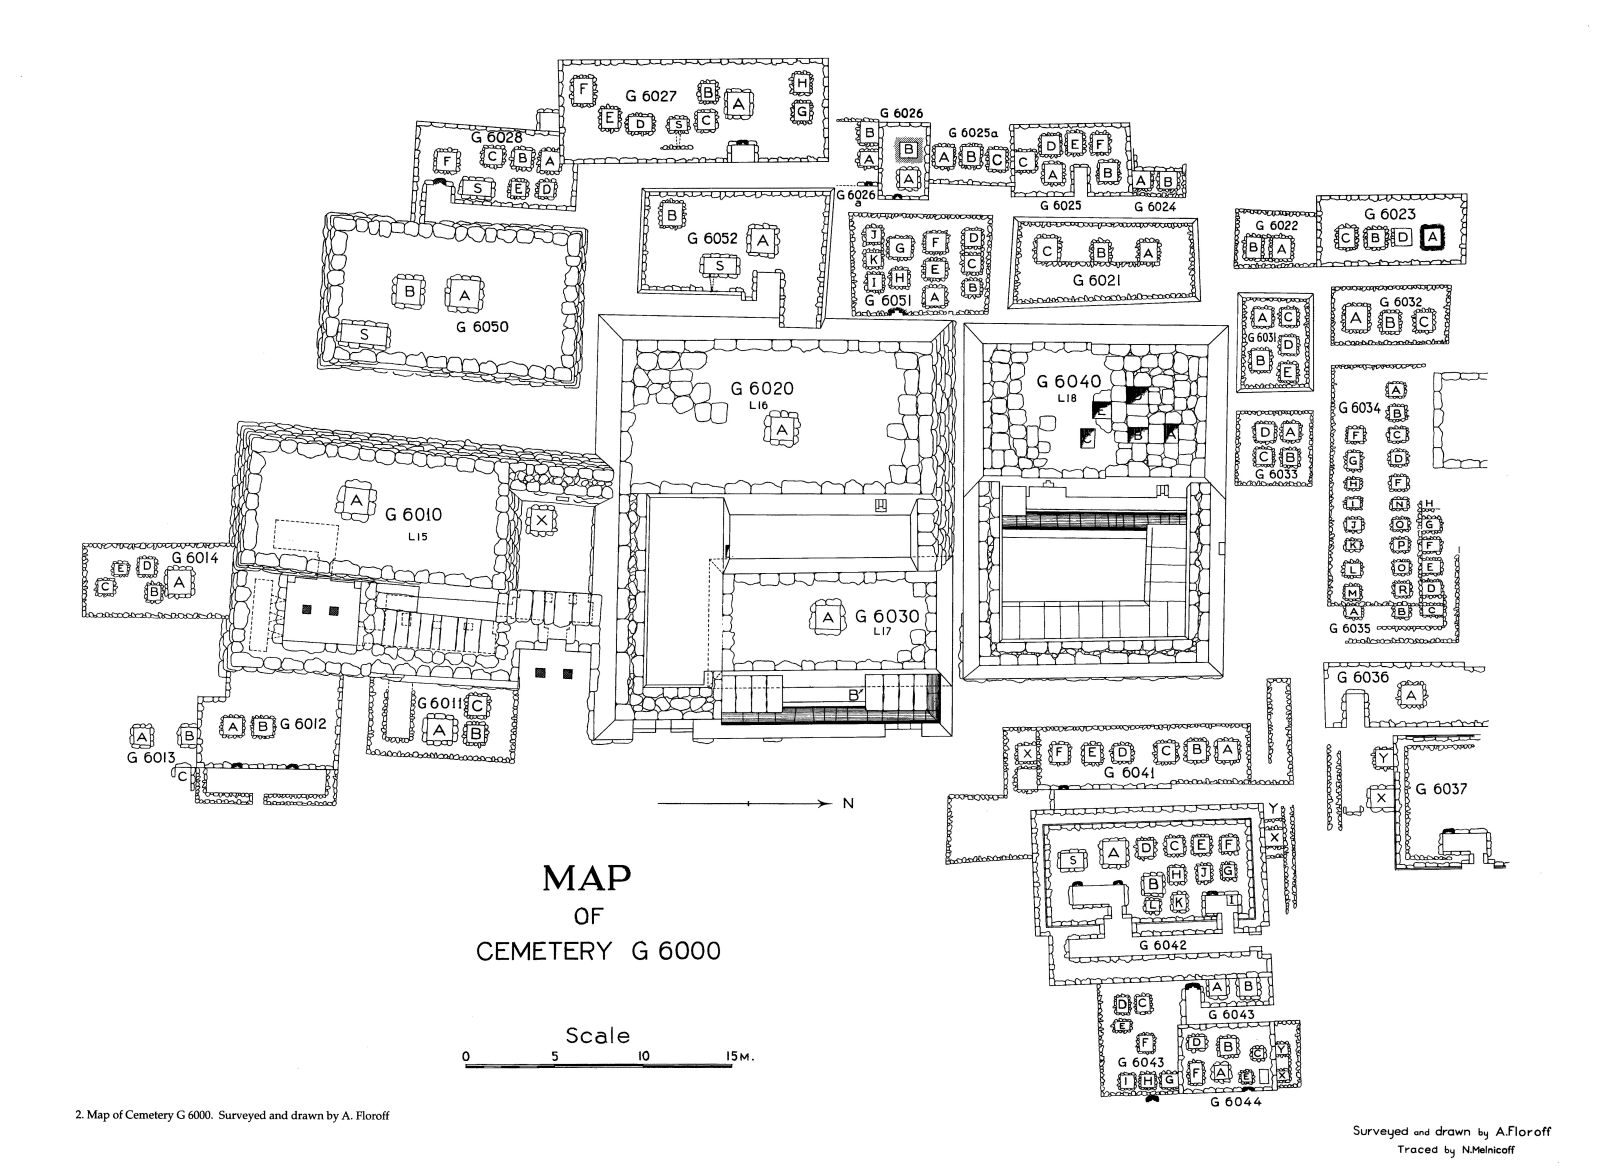 Maps and plans: Plan of Cemetery G 6000